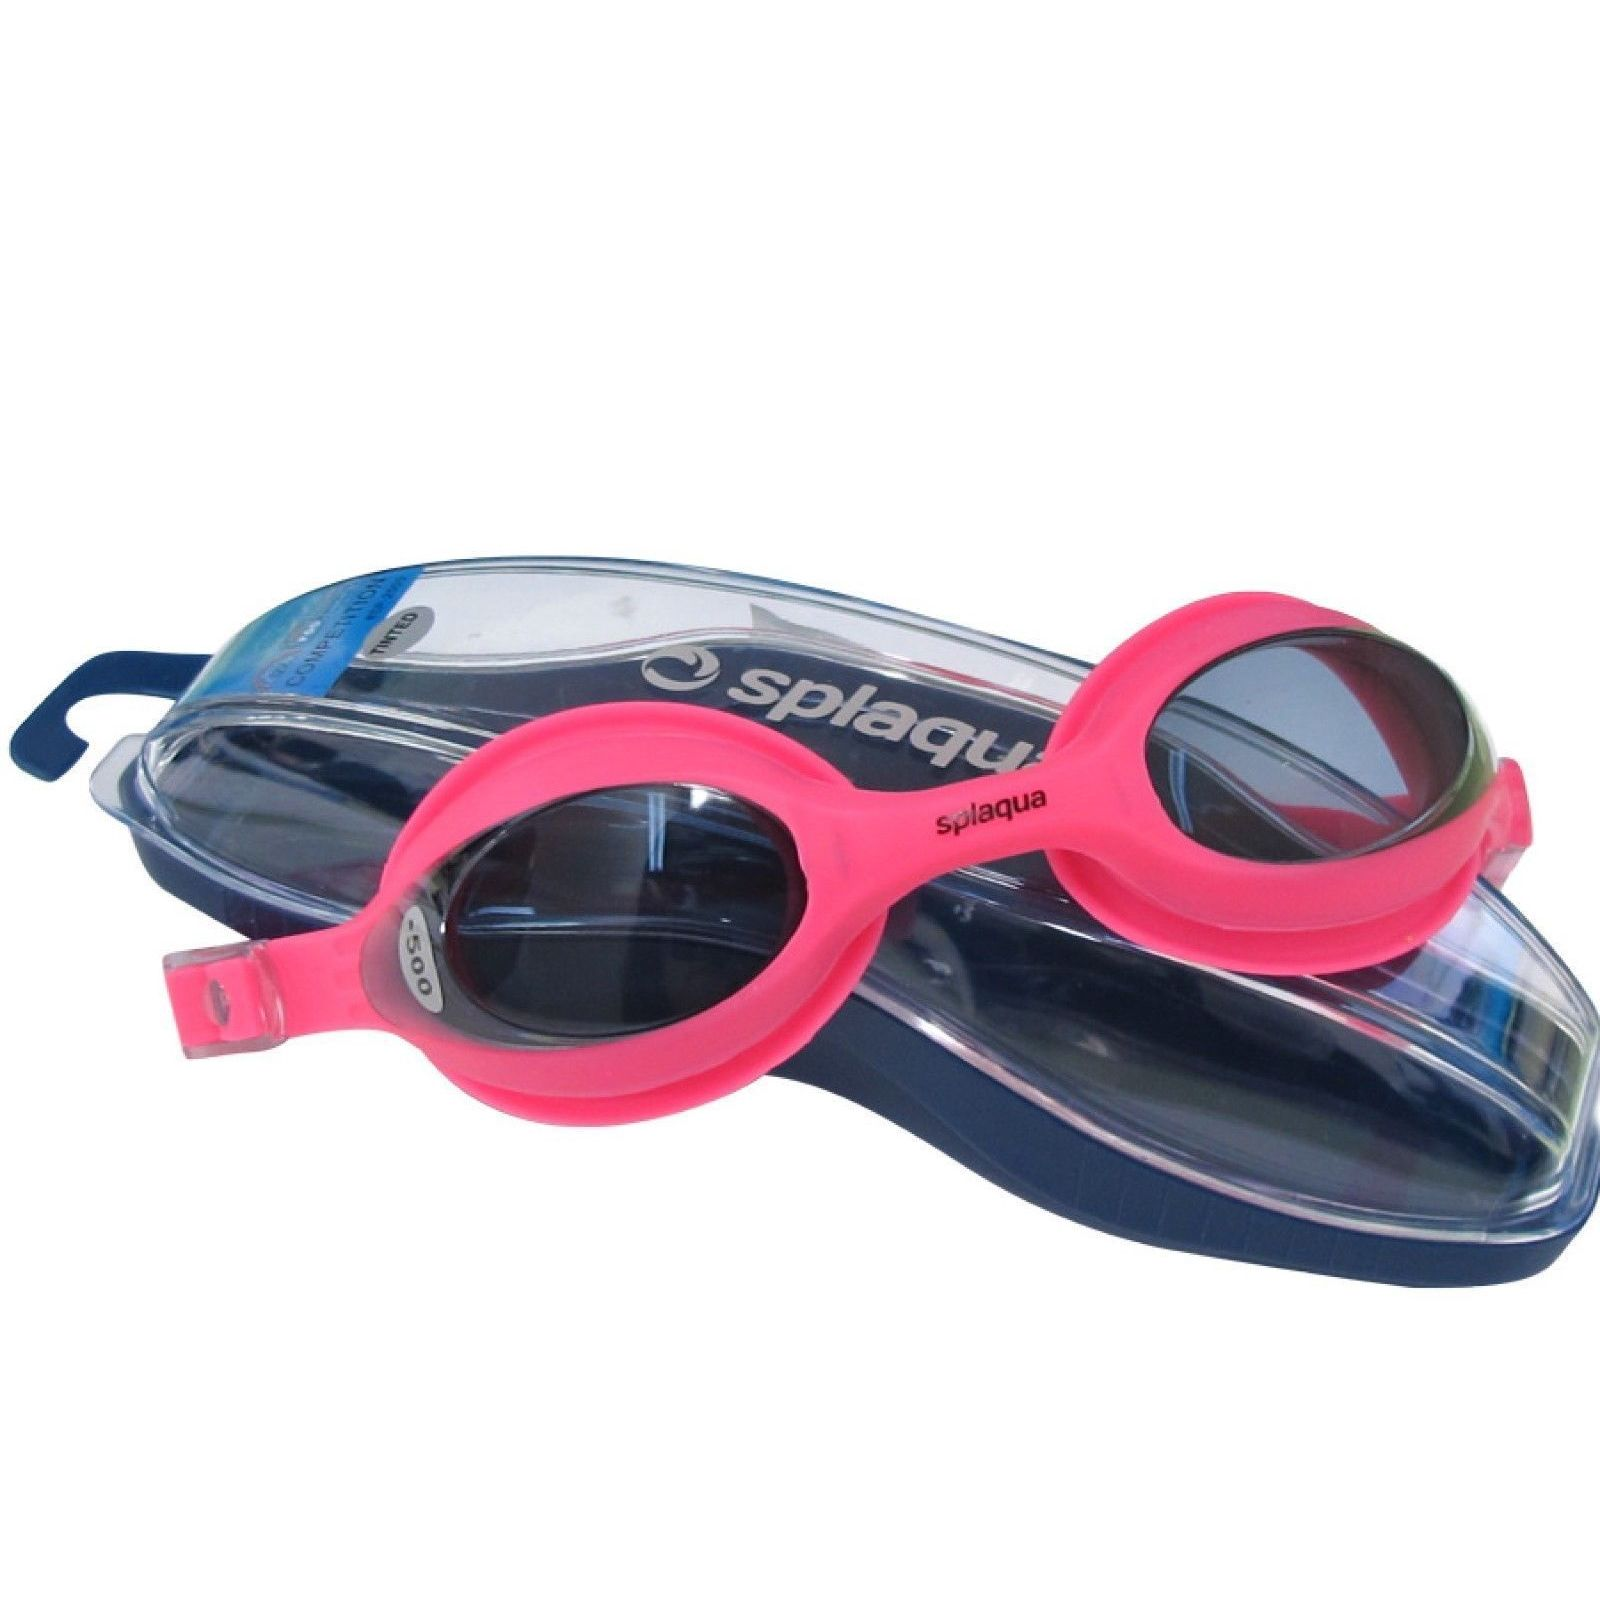 f082805c7562 Shop Splaqua Prescription Swim Goggles Pink Strap Tinted Lens Anti Fog - On  Sale - Free Shipping On Orders Over  45 - Overstock - 12142391